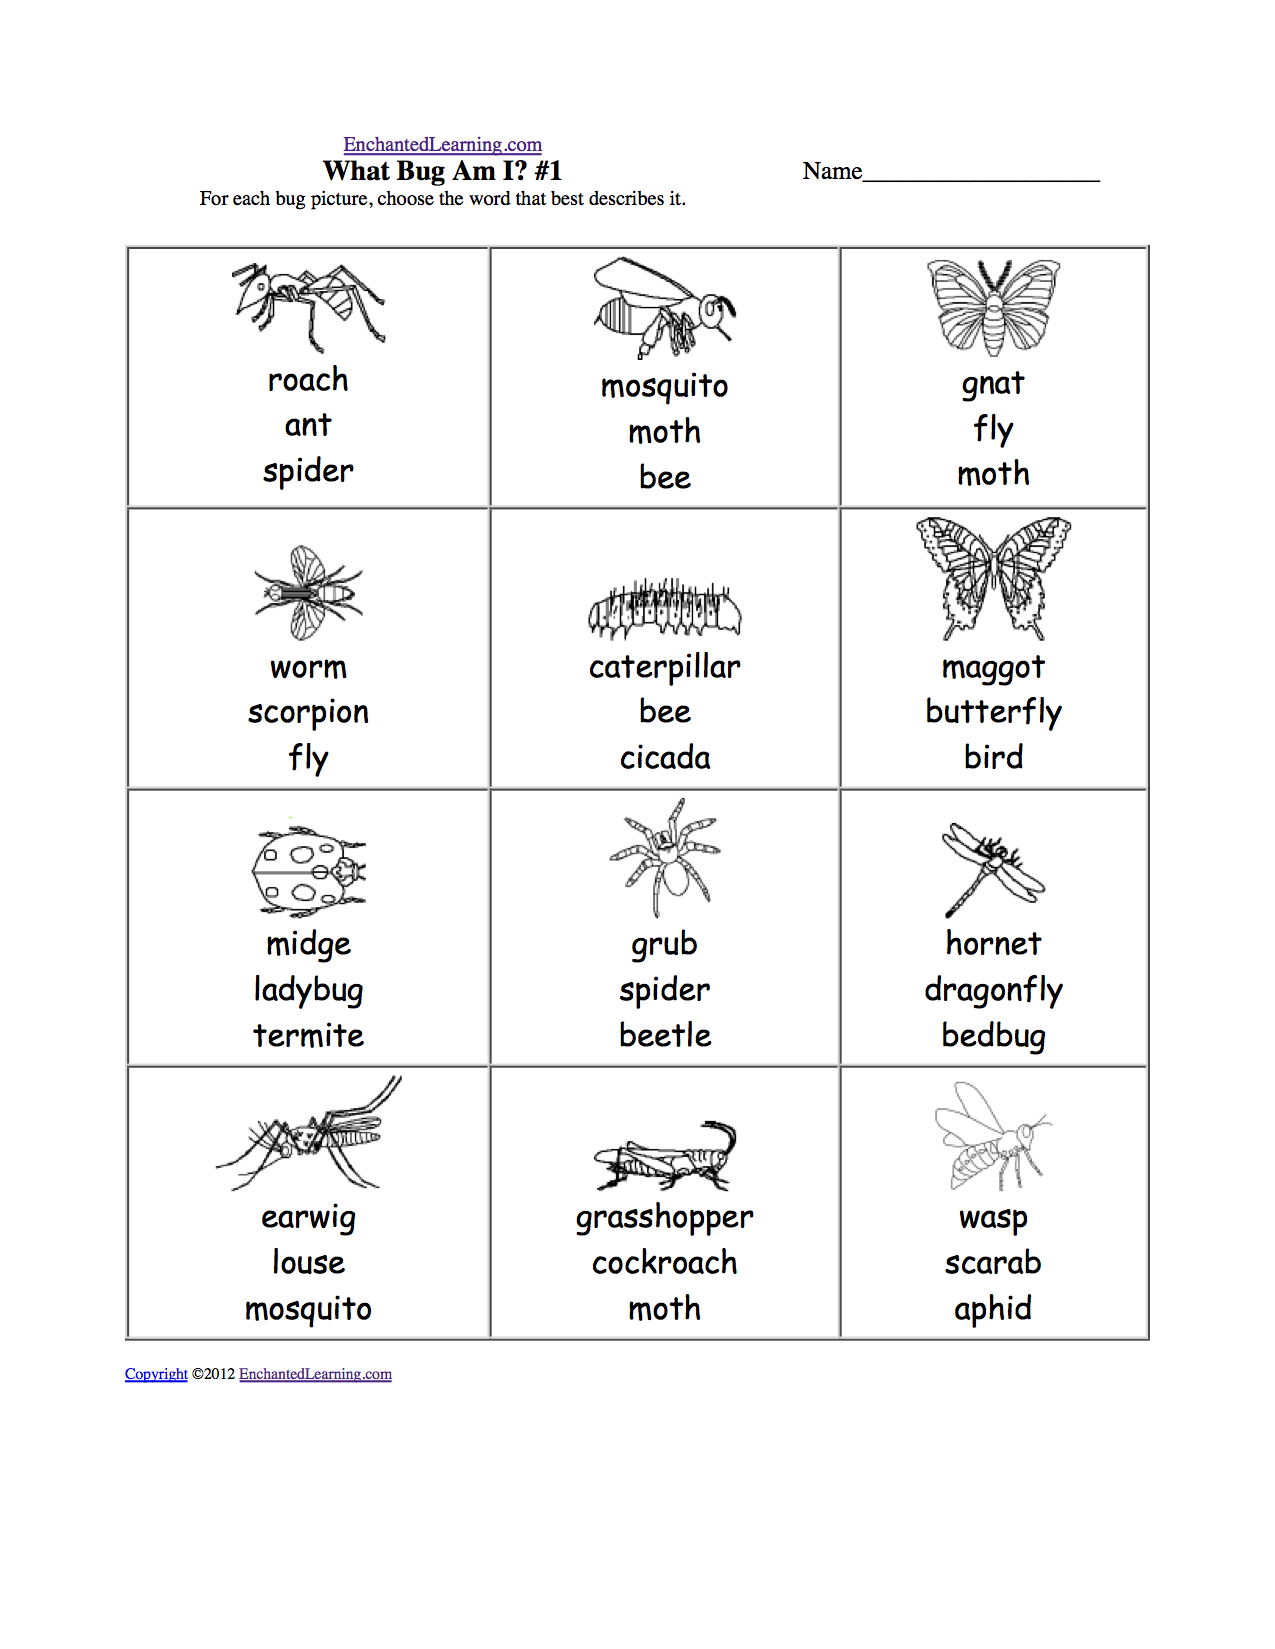 Aldiablosus  Unusual What Am I Worksheet Printouts  Enchantedlearningcom With Fascinating Alphabet Writing Worksheets For Kindergarten Besides Estimating Volume Worksheet Furthermore Ordinal Worksheets With Agreeable Homophone Worksheets For Th Grade Also Reading Comprehension Worksheets Fifth Grade In Addition Ordering Money Worksheets And Label Brain Worksheet As Well As Adding Ing To Words Worksheet Additionally Free Printable Double Digit Addition Worksheets From Enchantedlearningcom With Aldiablosus  Fascinating What Am I Worksheet Printouts  Enchantedlearningcom With Agreeable Alphabet Writing Worksheets For Kindergarten Besides Estimating Volume Worksheet Furthermore Ordinal Worksheets And Unusual Homophone Worksheets For Th Grade Also Reading Comprehension Worksheets Fifth Grade In Addition Ordering Money Worksheets From Enchantedlearningcom